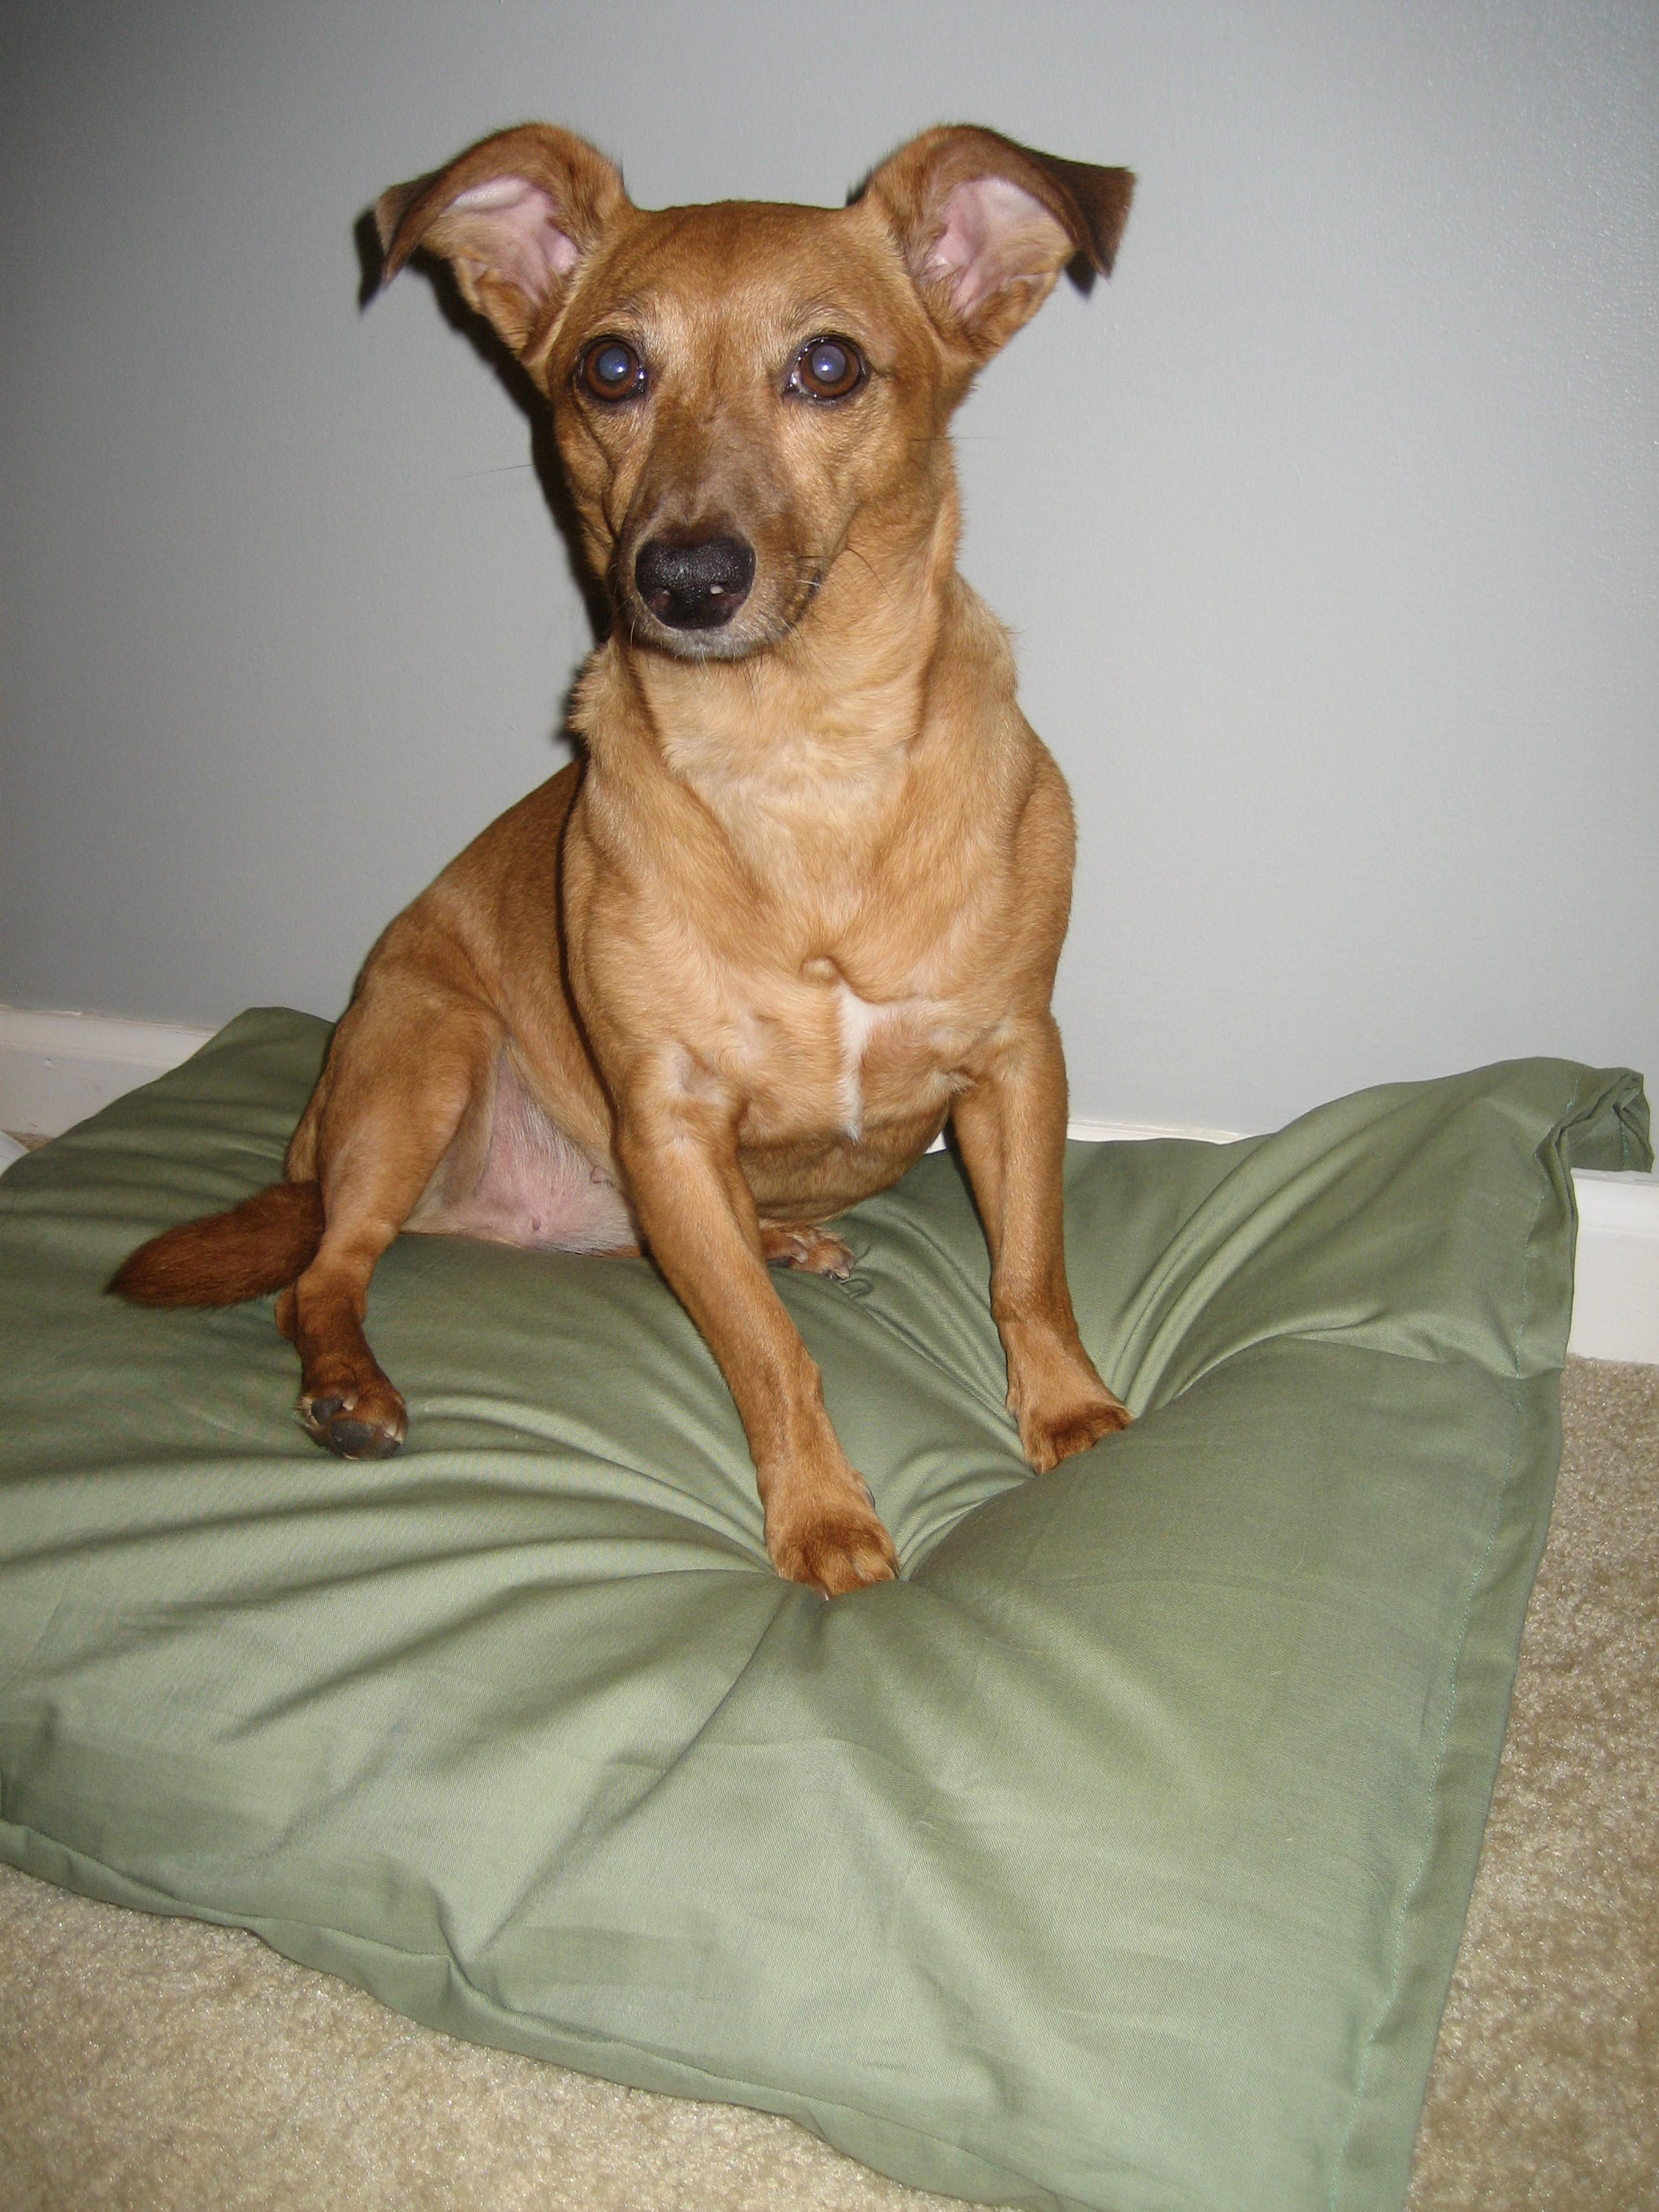 Picture of That's It! in 10 Short Minutes, Your Dog Will Be Able to Kick Back on His/her New Bed and Look Good Doin' It.�